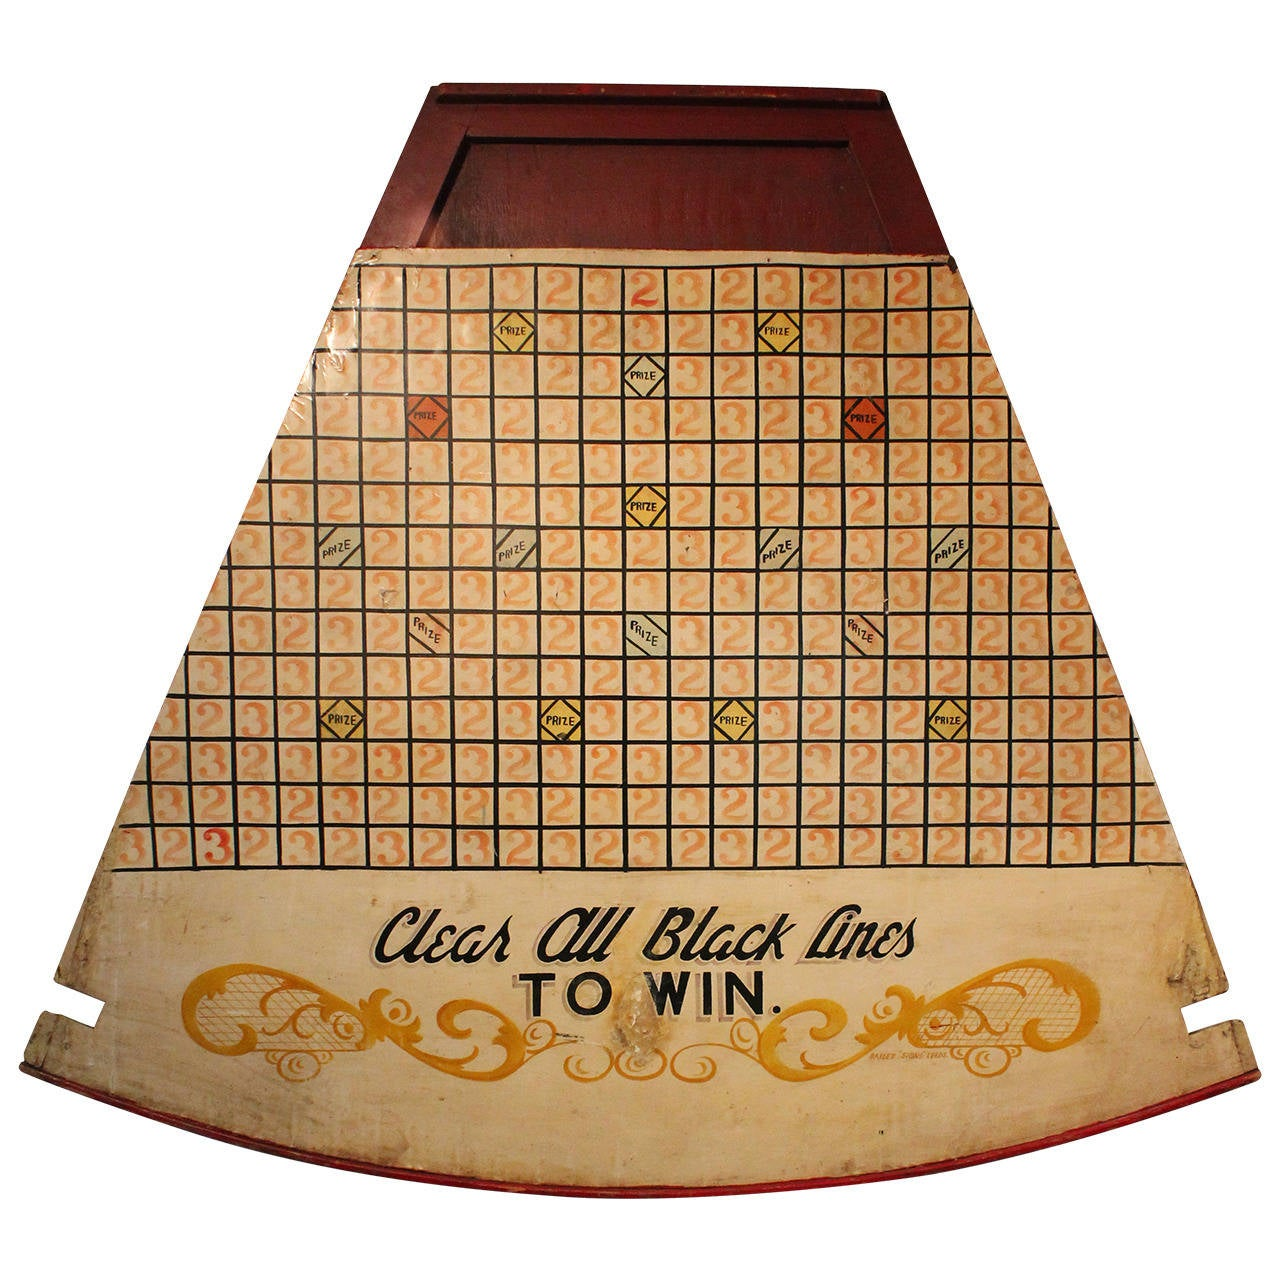 Large Scale Hand Painted Carnival Coin Toss Game Board At